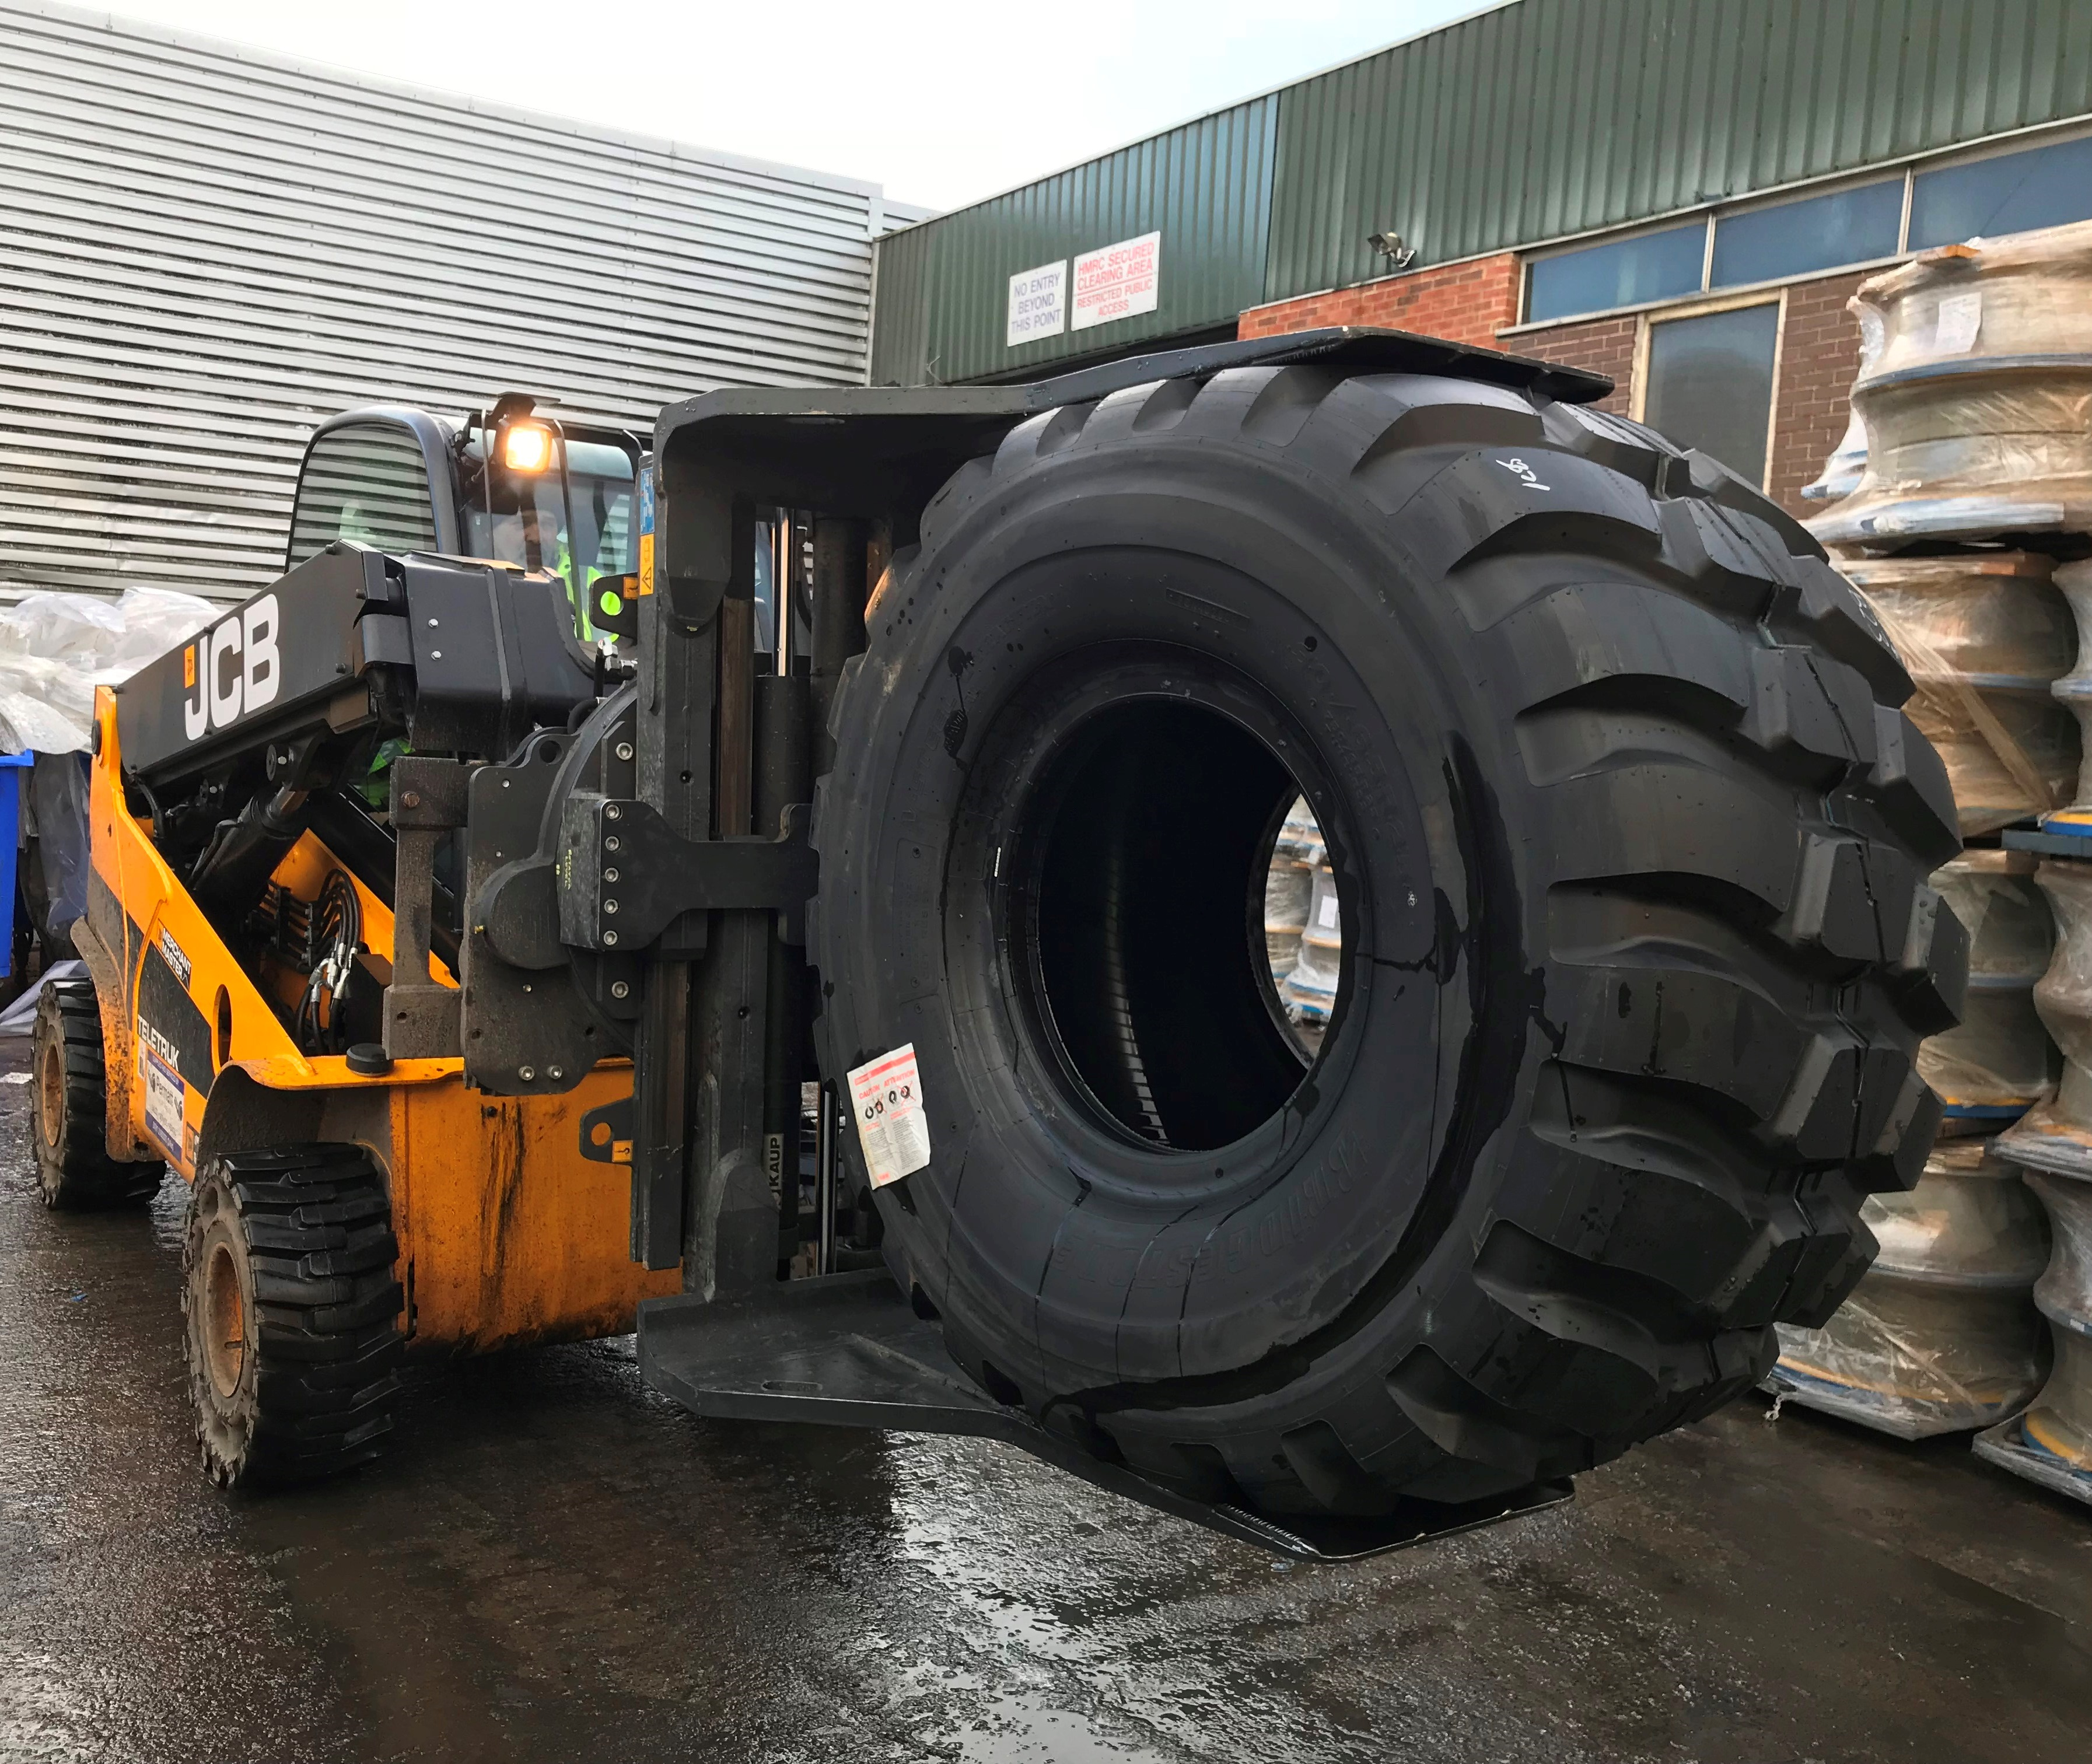 B&B Attachments Provide Handling Solutions to Distribution and Warehousing Company